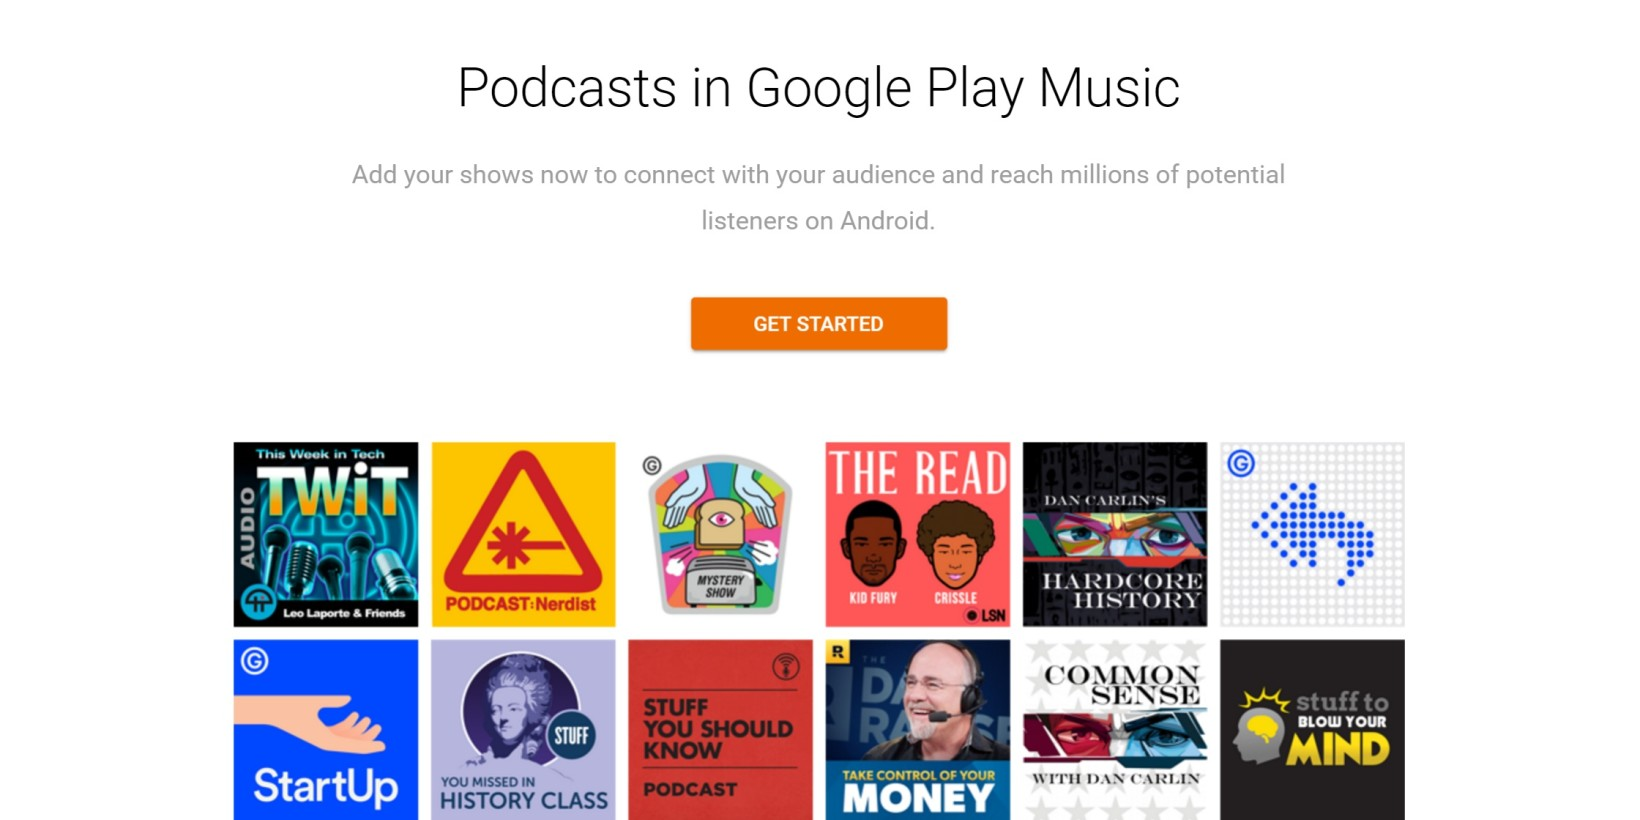 Google Play Music Podcasts 2